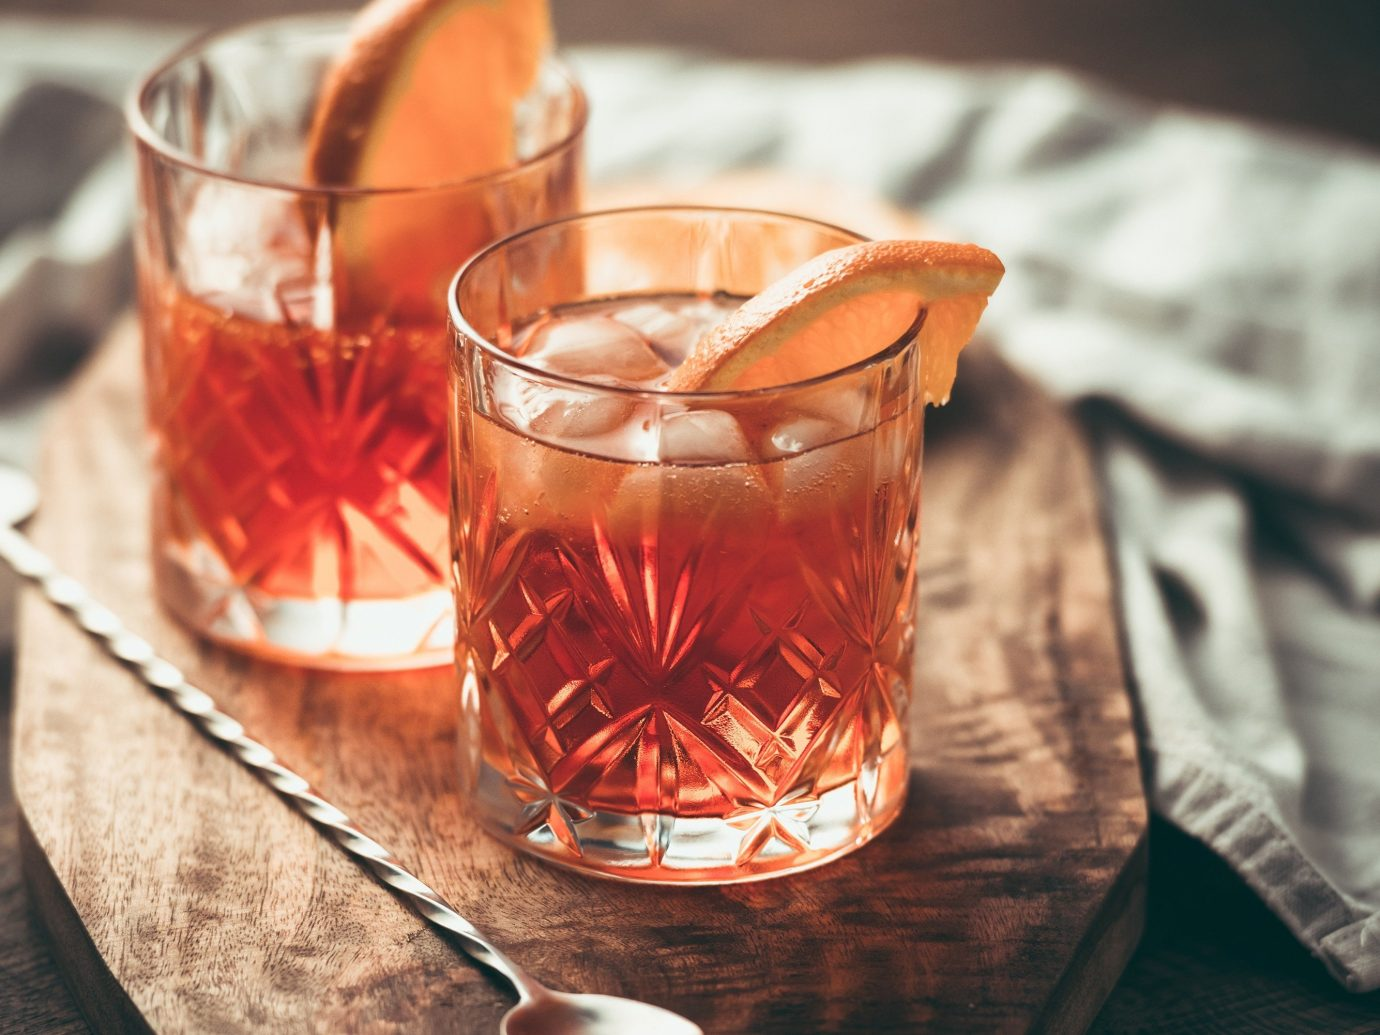 Offbeat table cup food sitting indoor glass Drink alcoholic beverage distilled beverage container whisky slice old fashioned negroni beverage alcohol close meal sliced